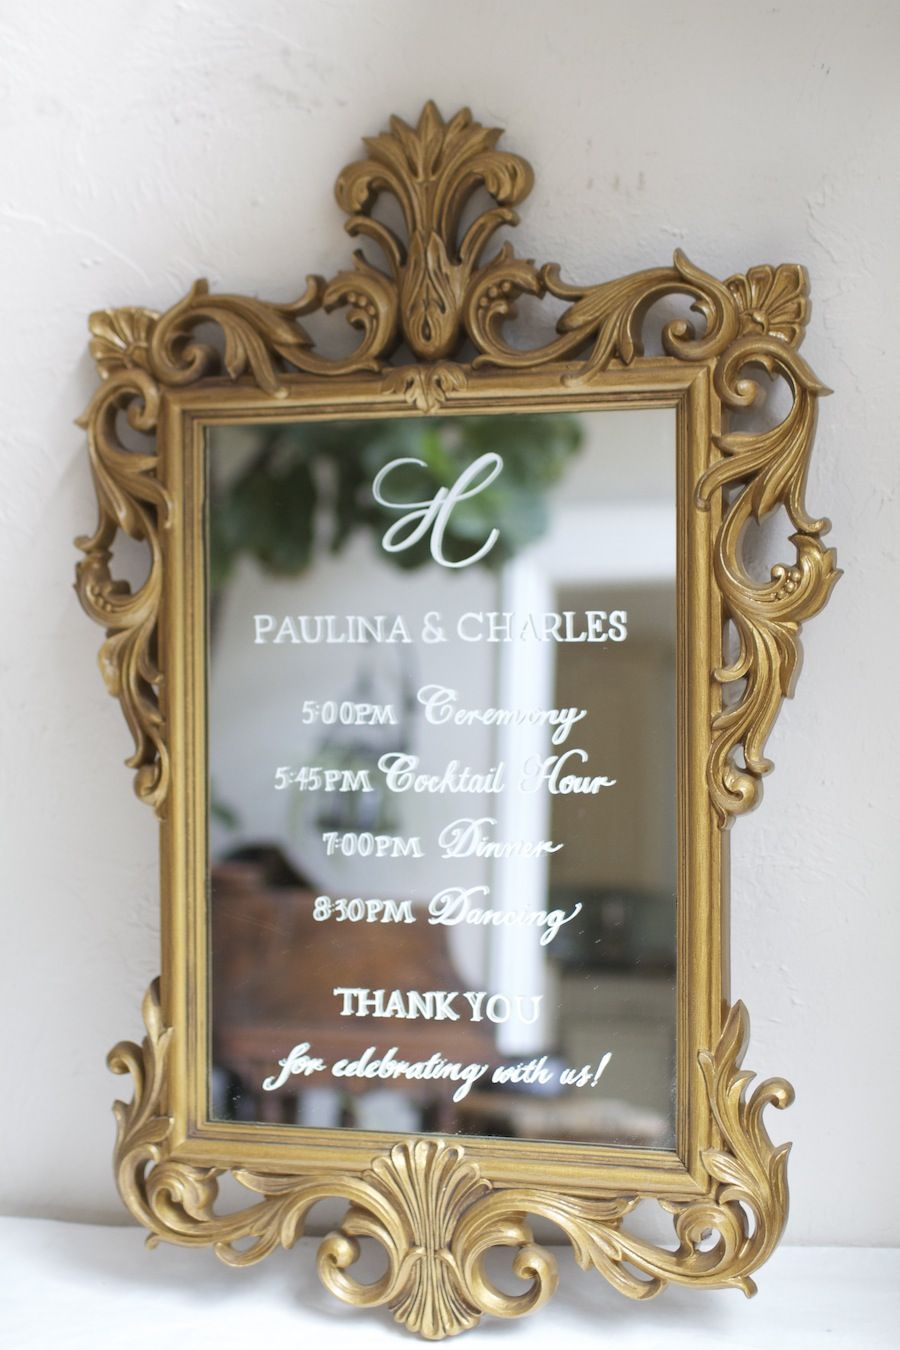 Hand painted wedding programreception timeline please read monogram topped wedding timeline sign on ornate gold vintage mirror custom personalized signs for events jeuxipadfo Gallery